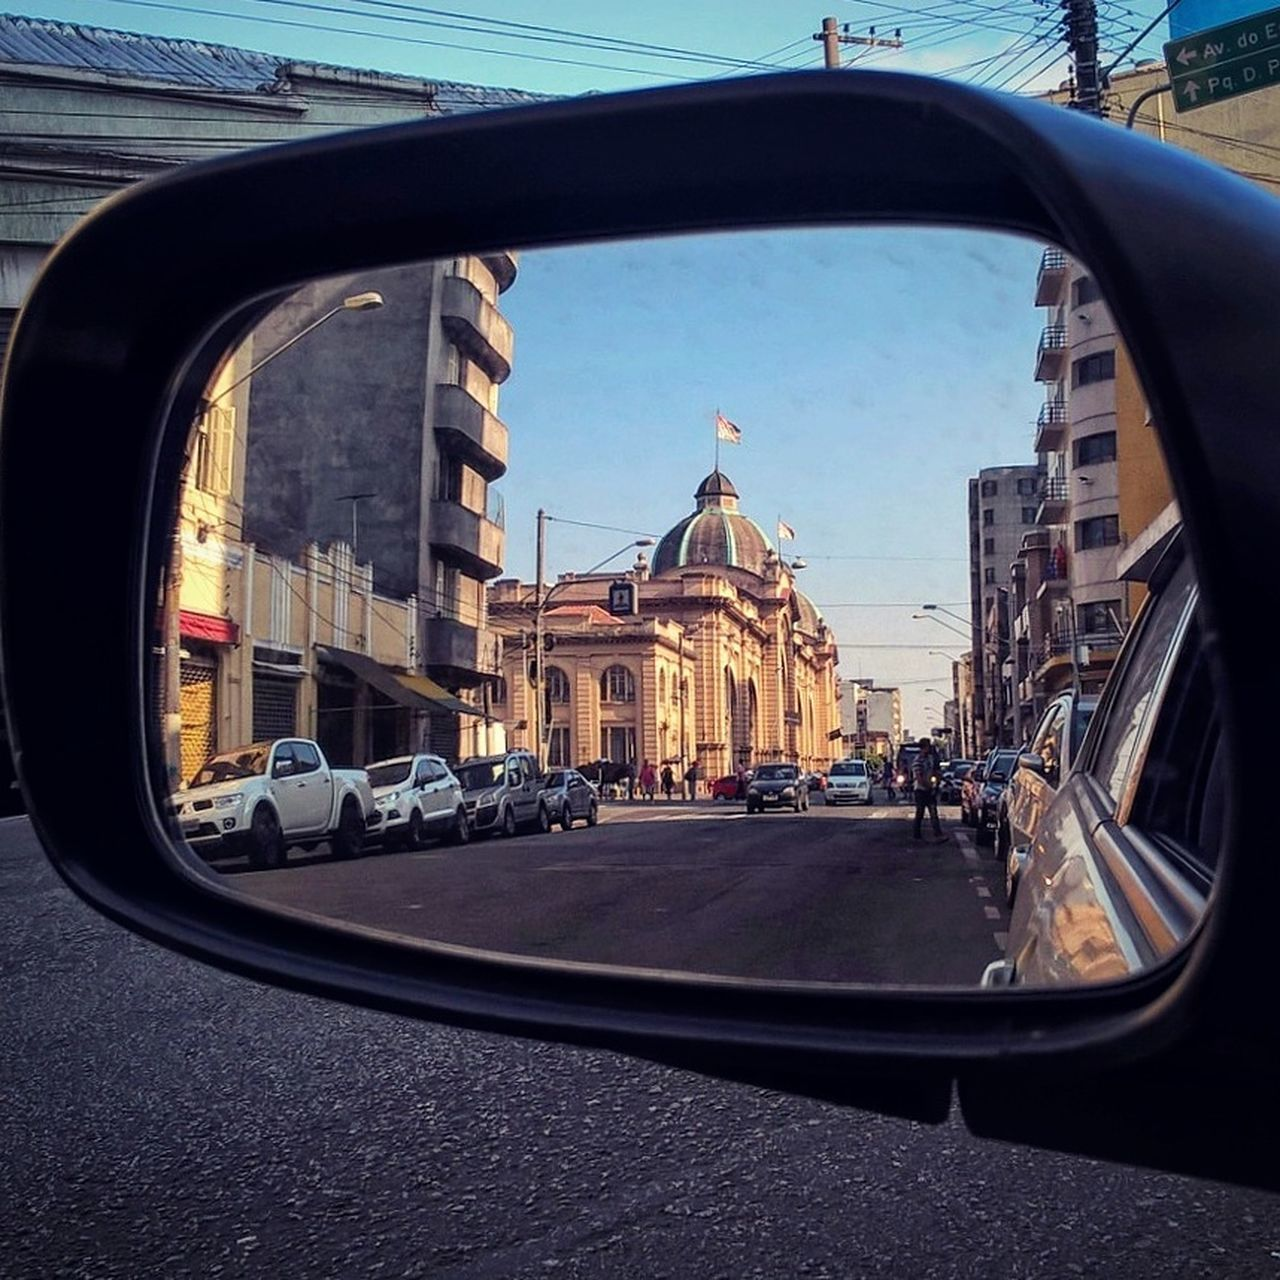 City Architecture Vehicle Mirror Mercadaosp